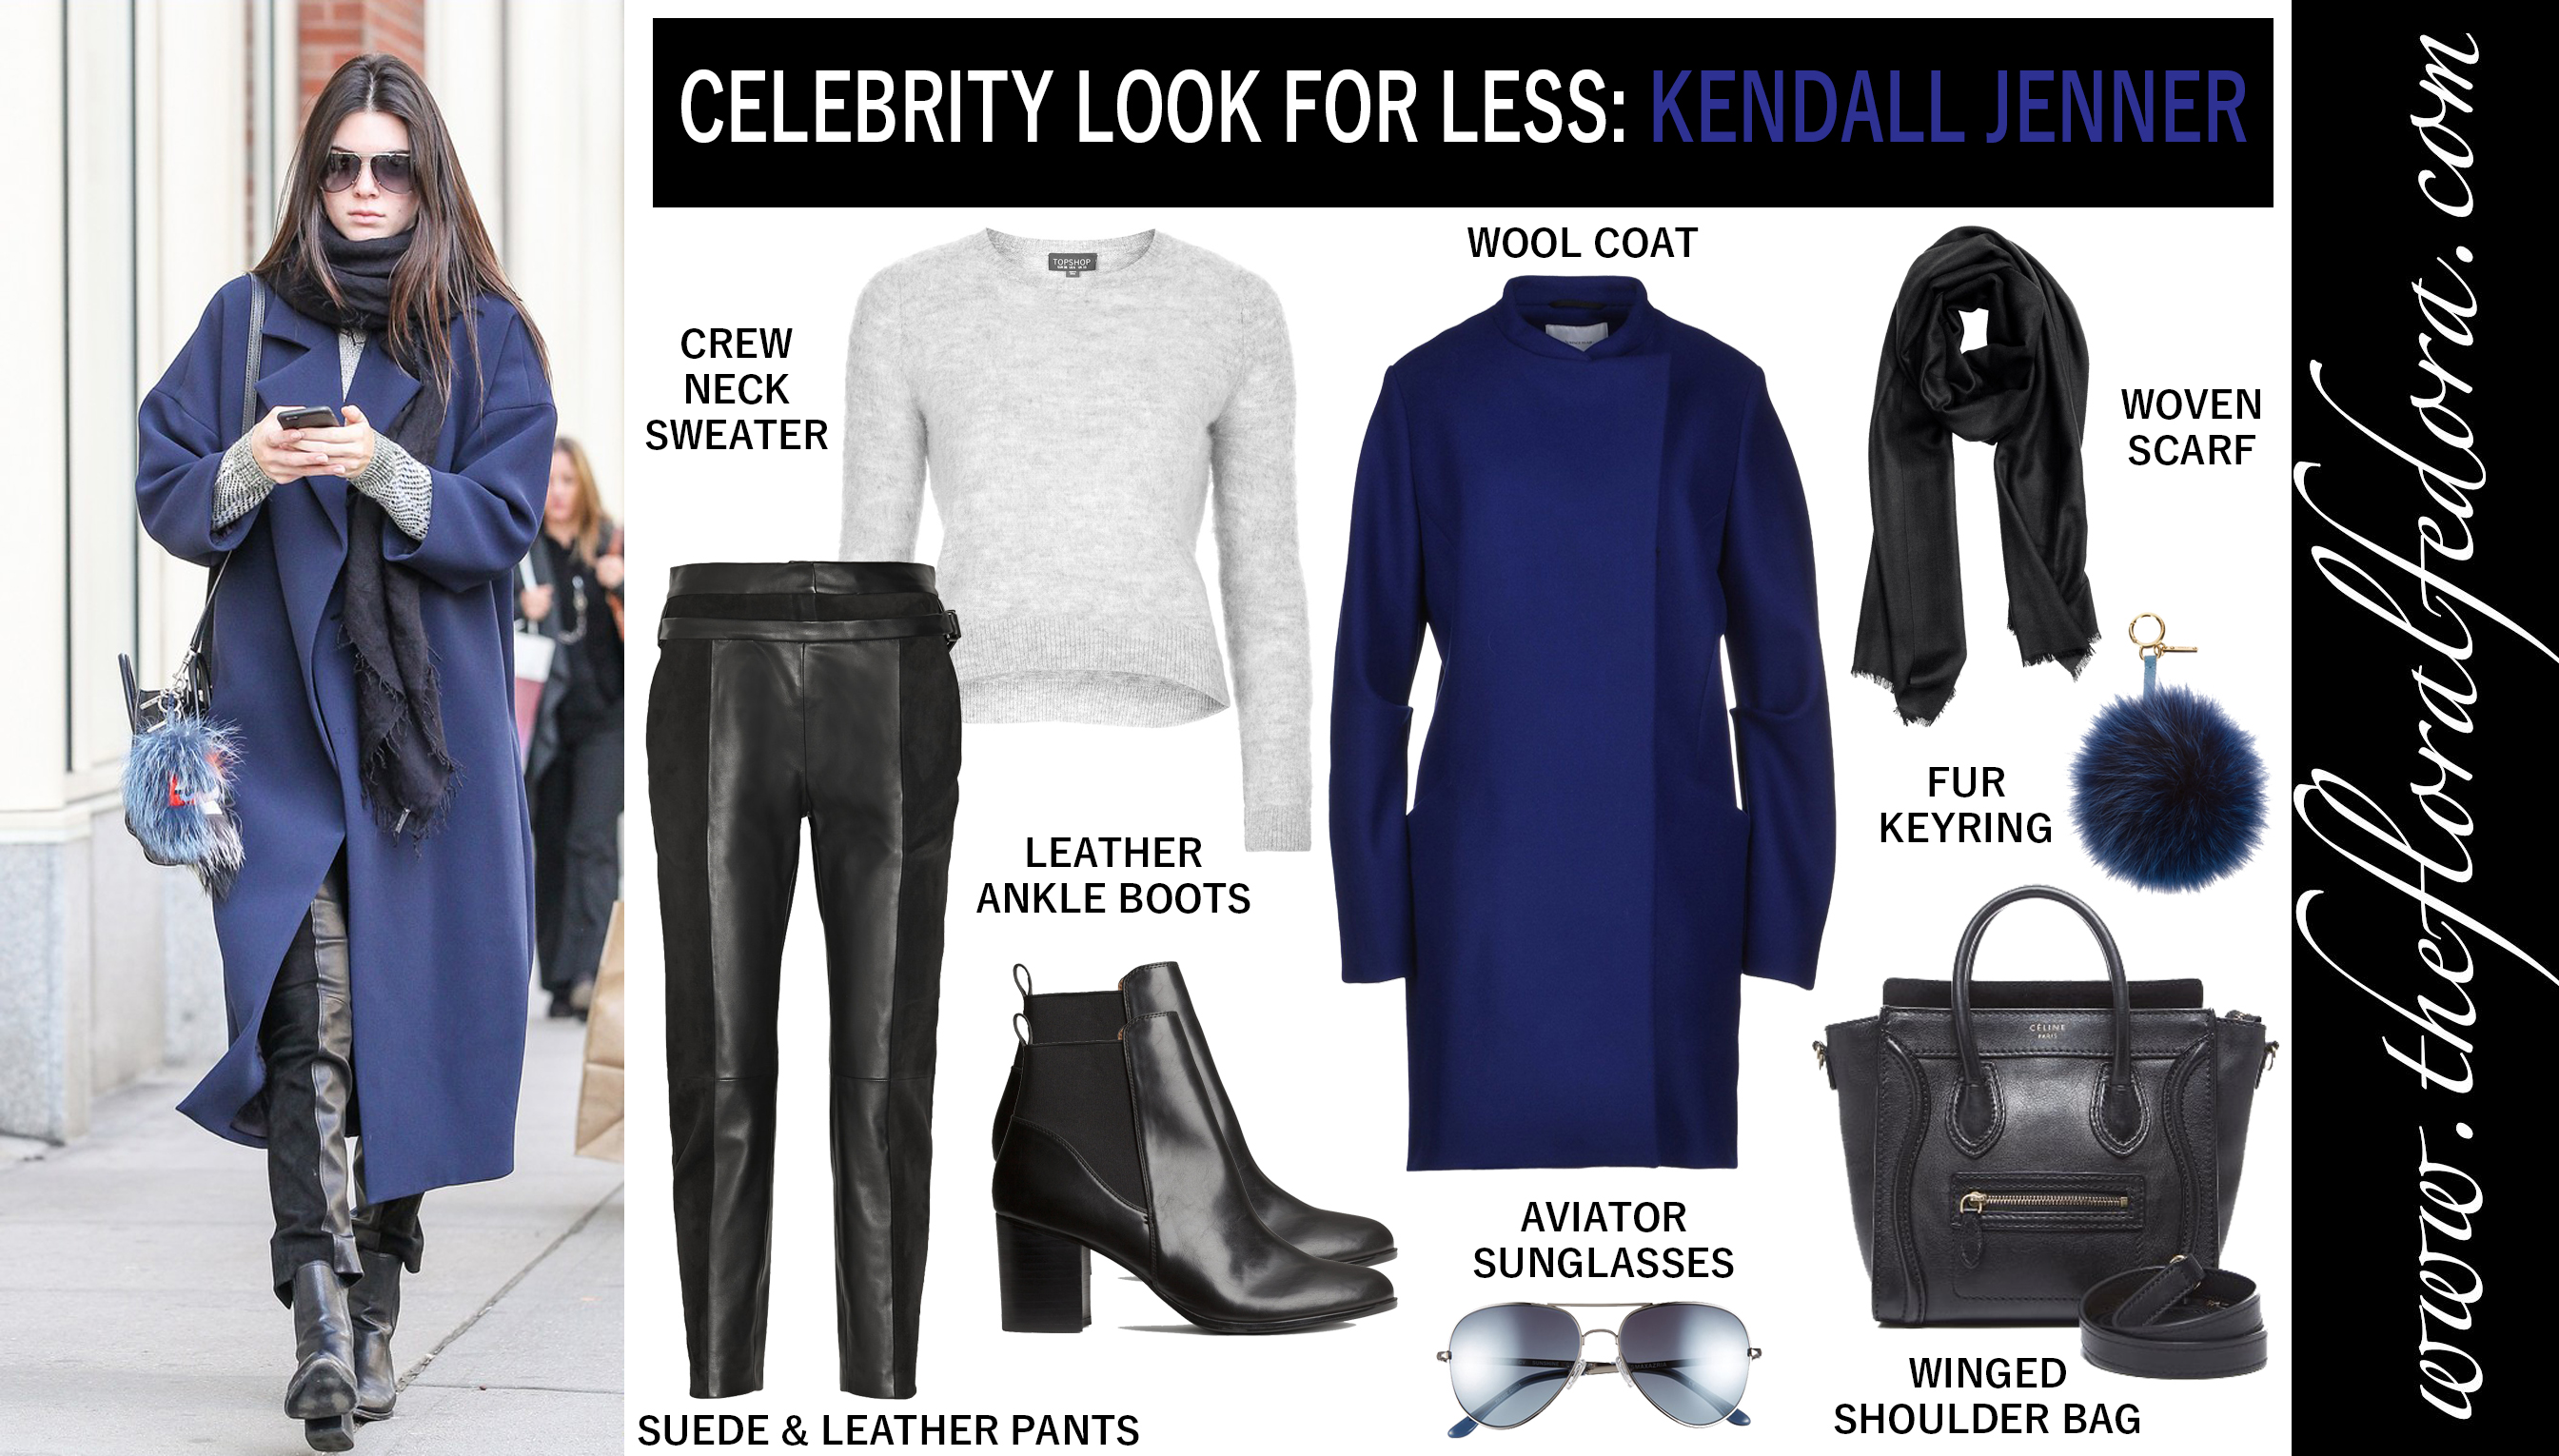 Celebrity Look for Less: Kendall Jenner